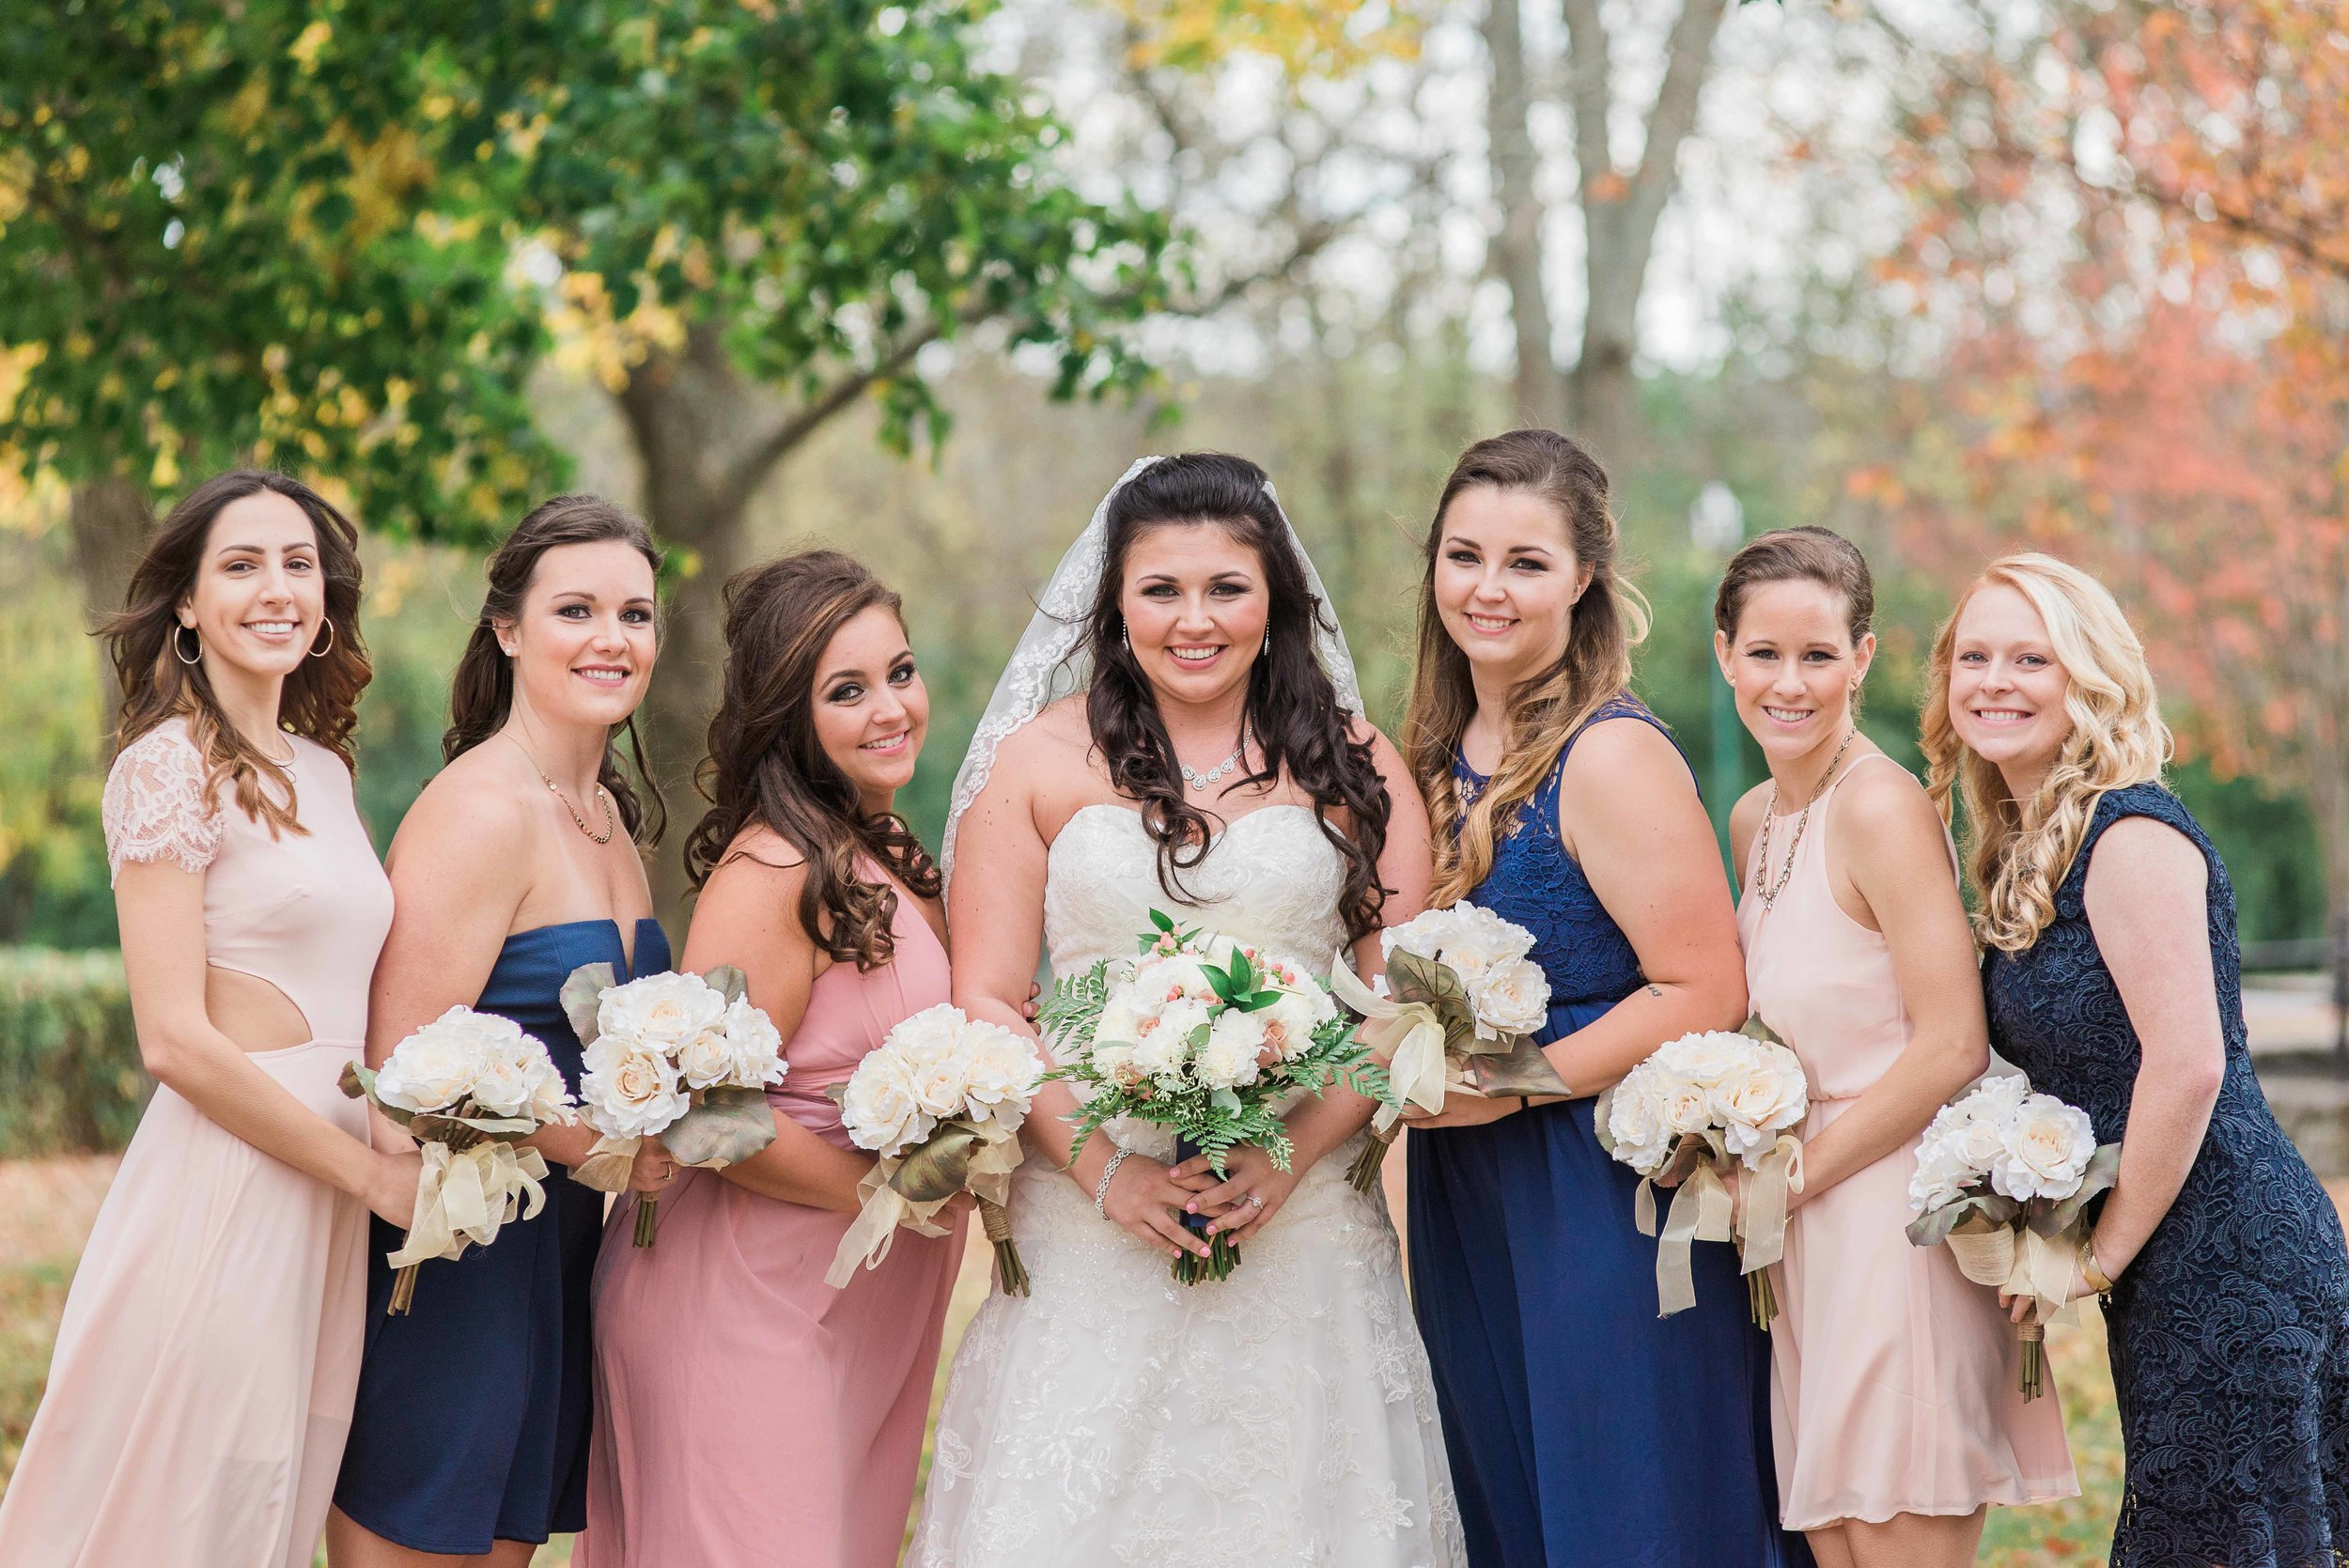 Bride and her bridesmaids at the Cardome Center in Georgetown, KY